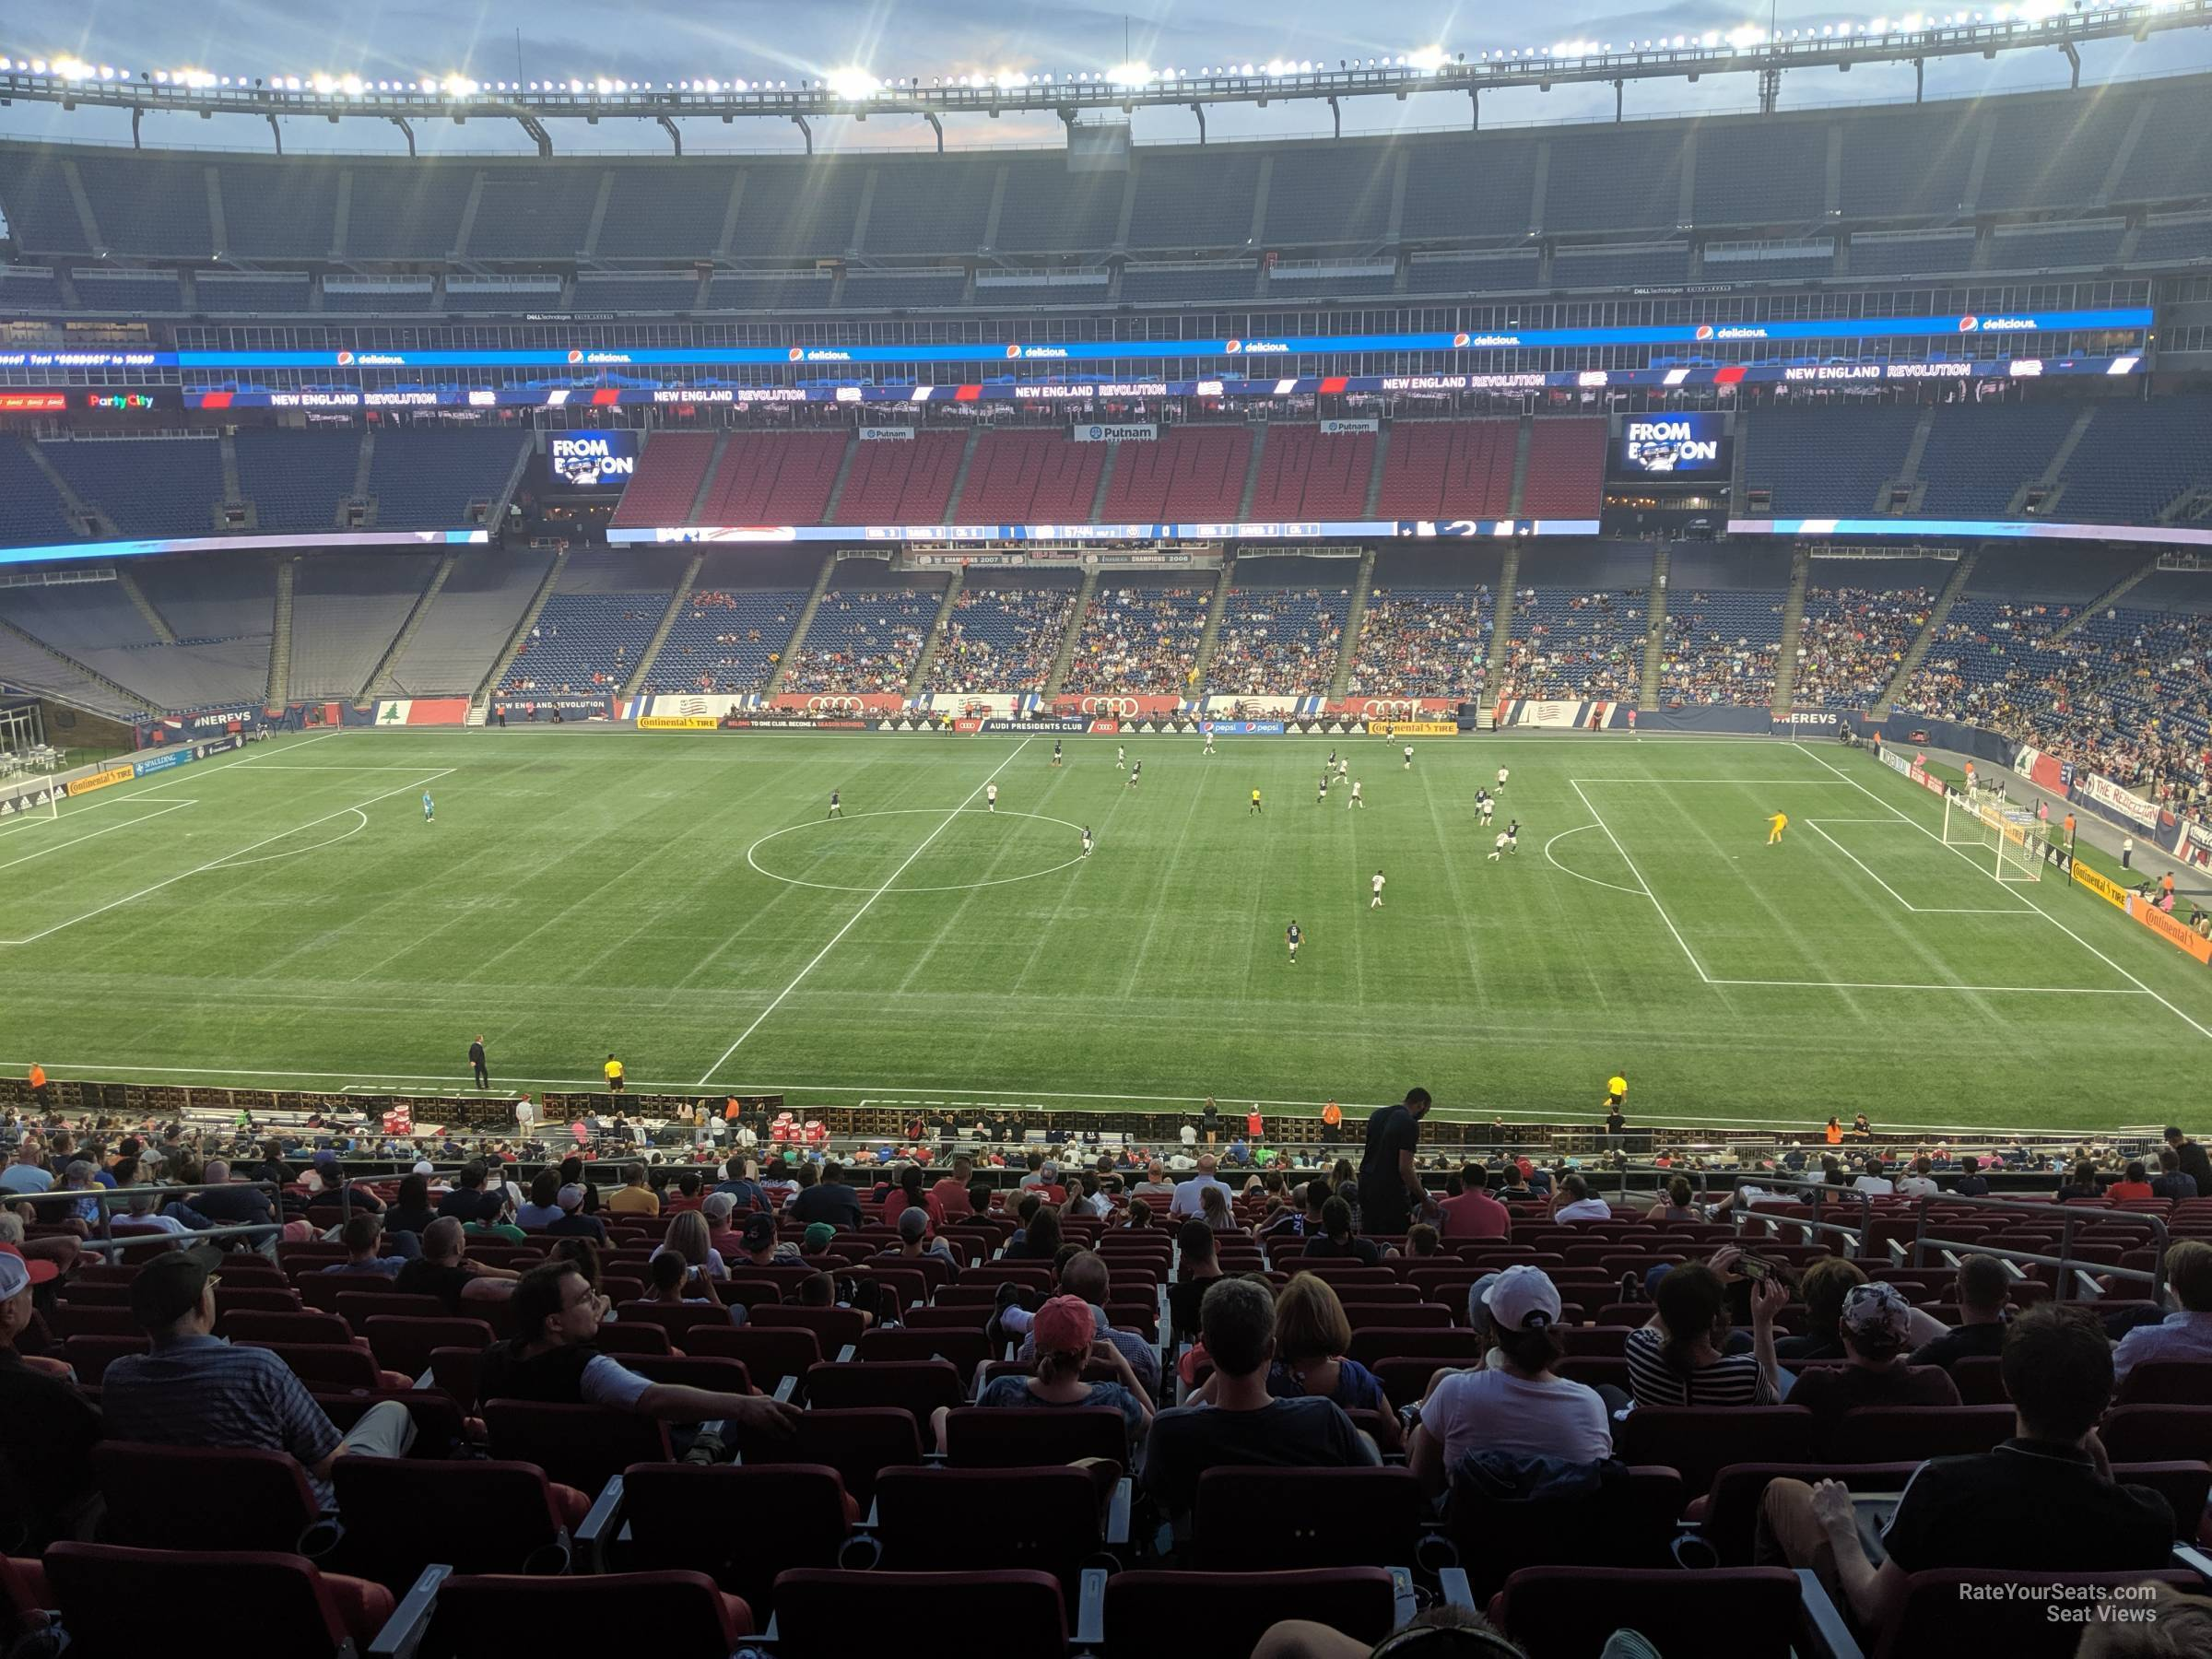 Section CL8 seat view